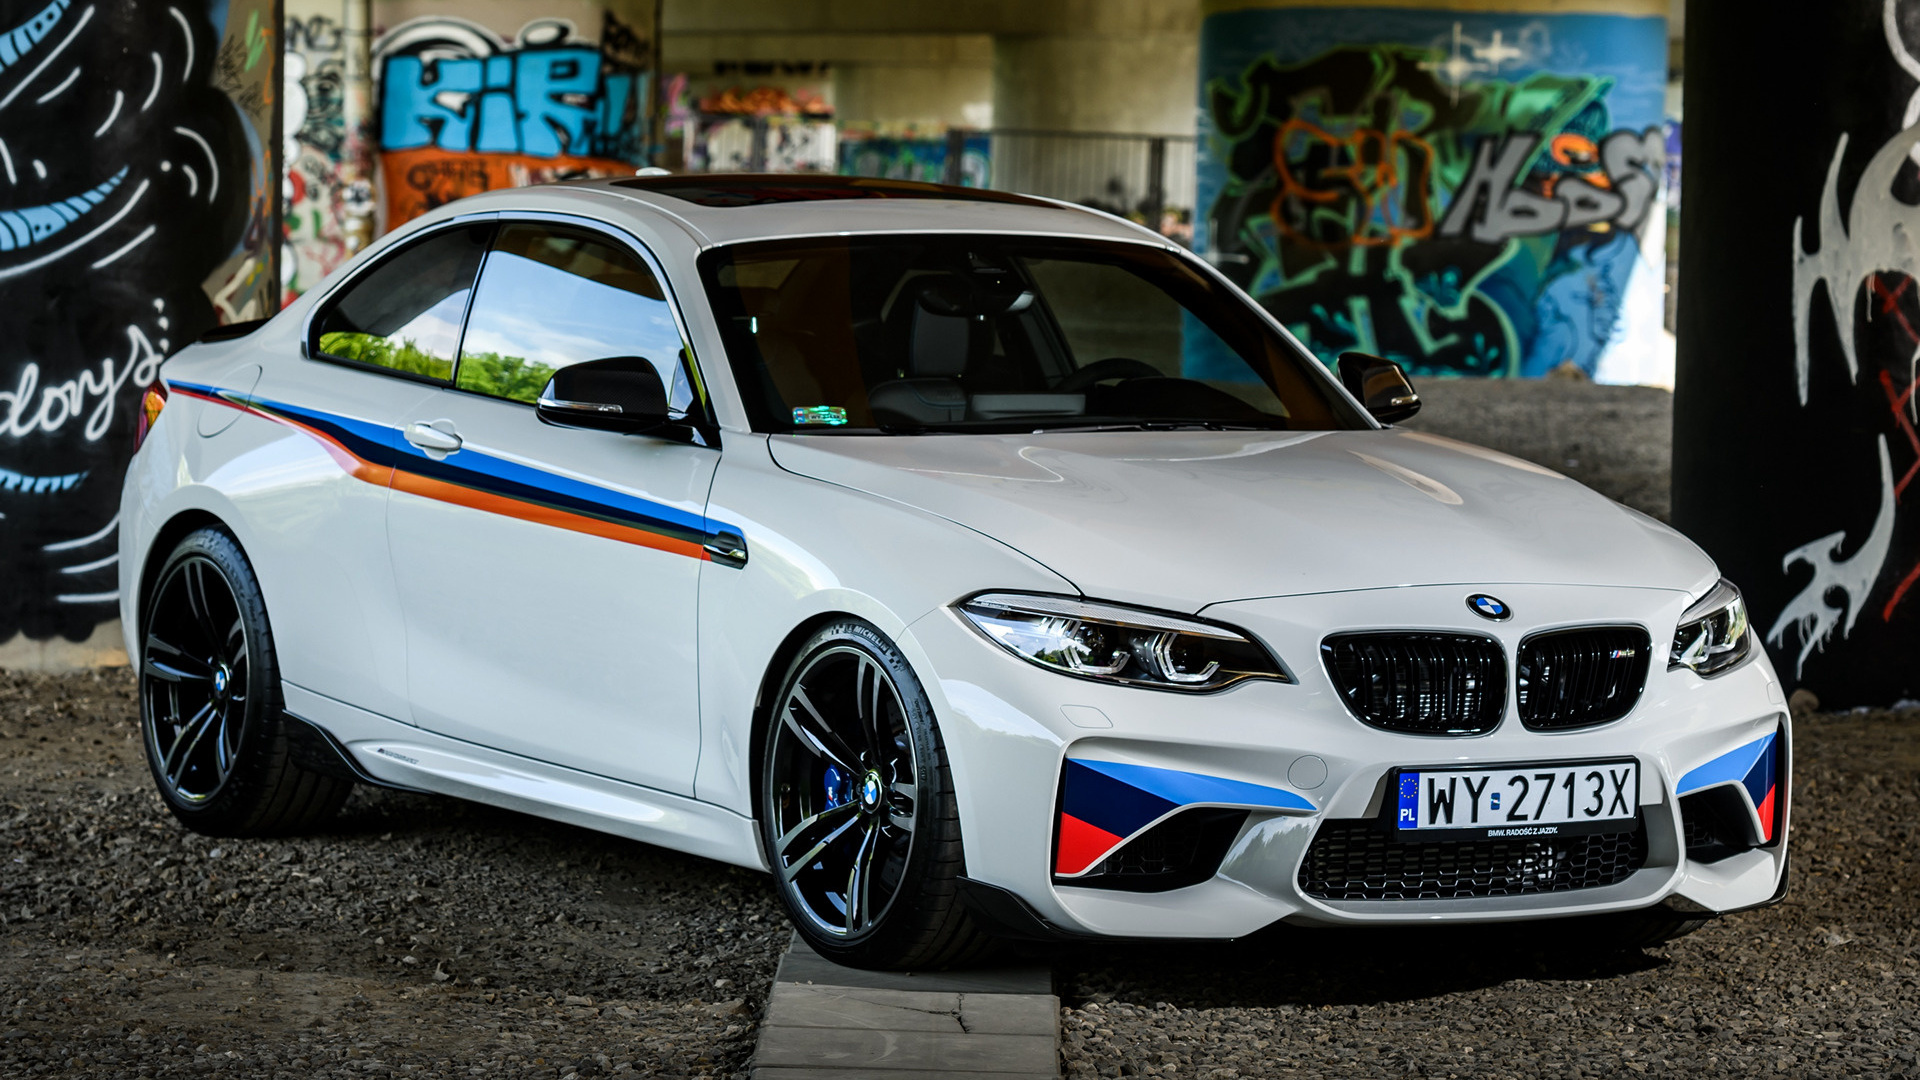 2017 Bmw M2 Coupe With M Performance Parts обои и картинки